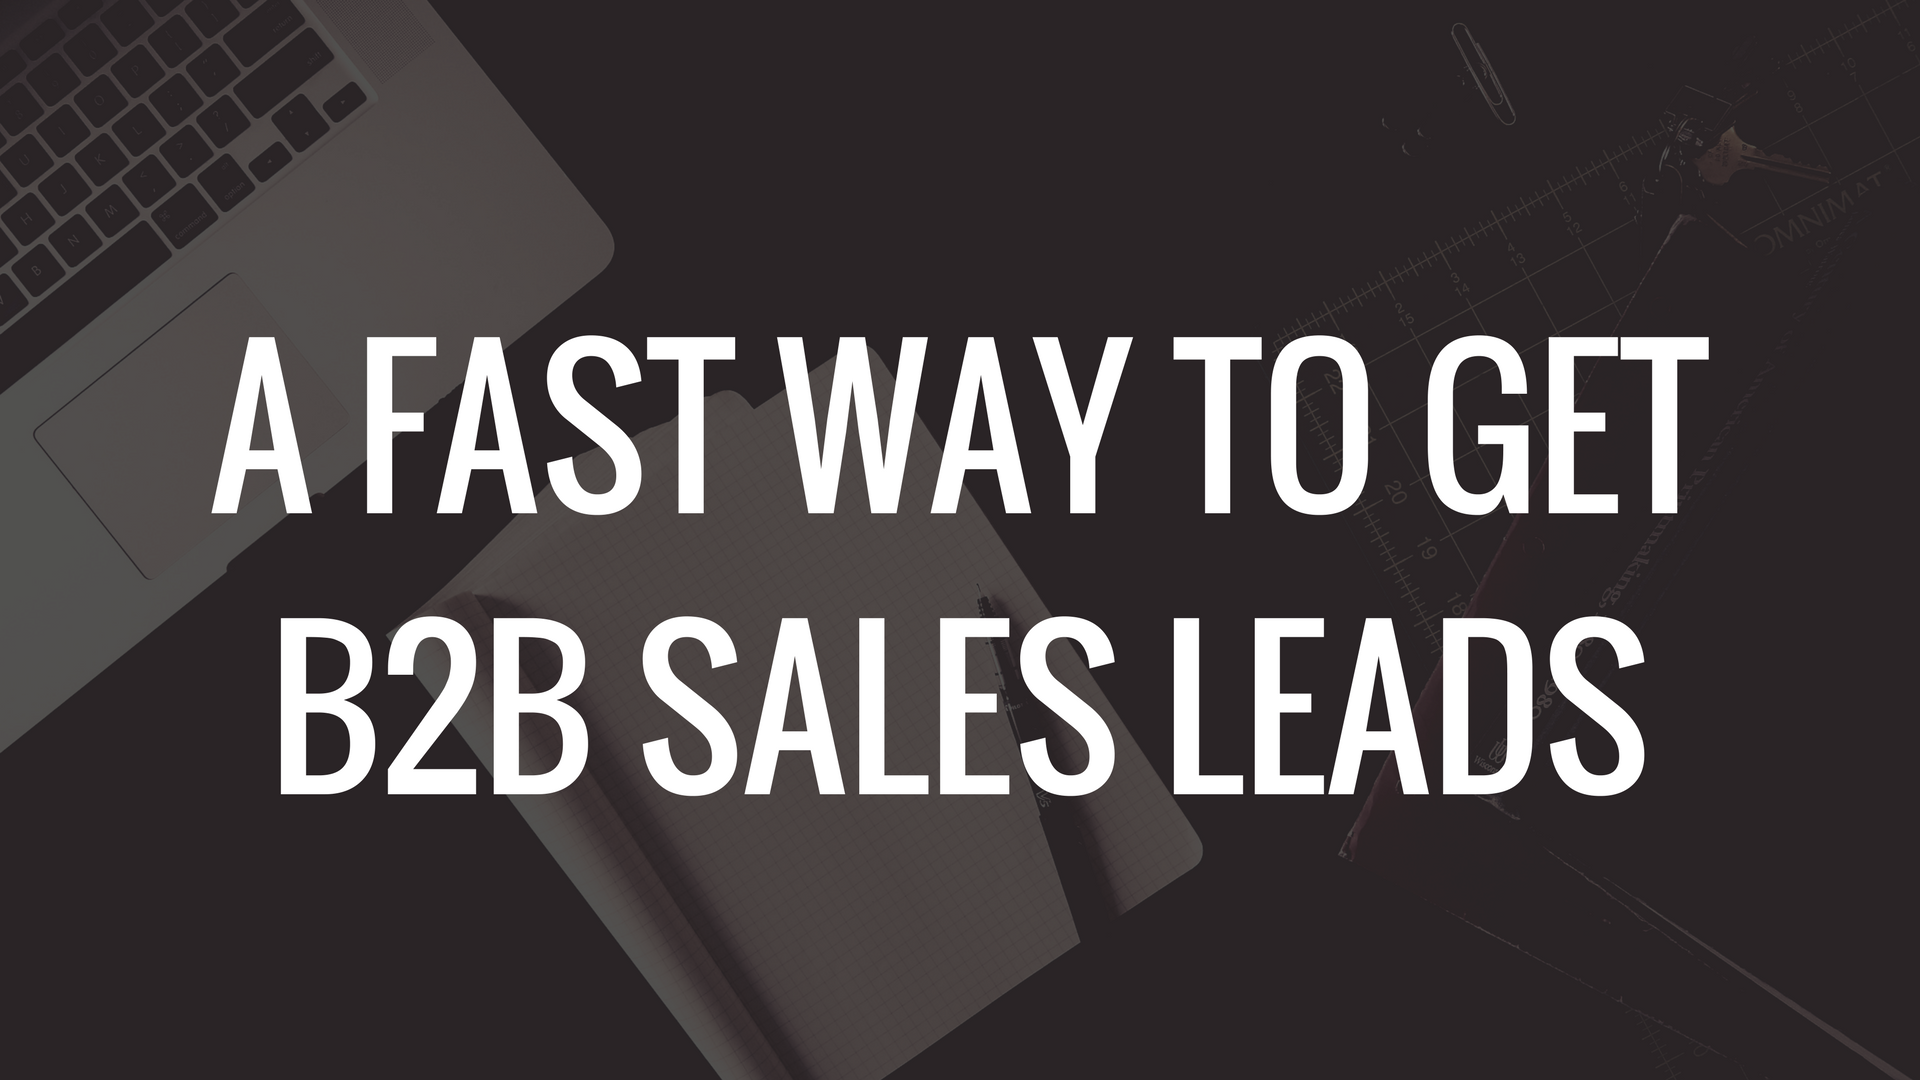 A Fast Way To Get B2B Sales Leads